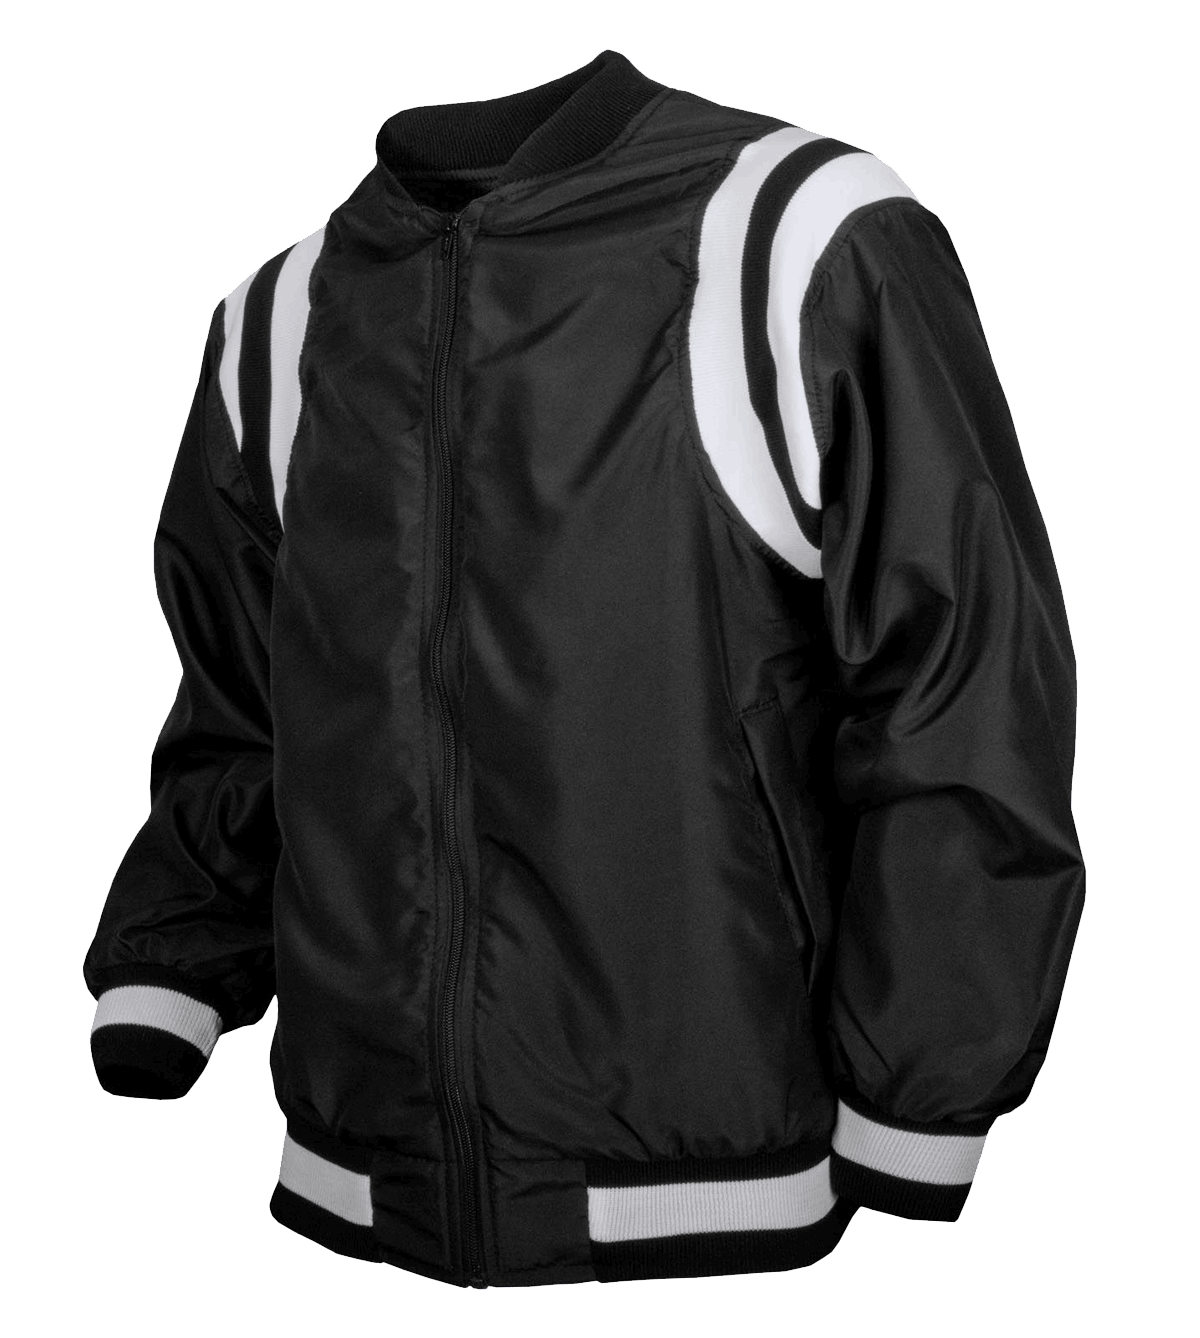 HONIG'S Shoulder Stripe Basketball Jacket